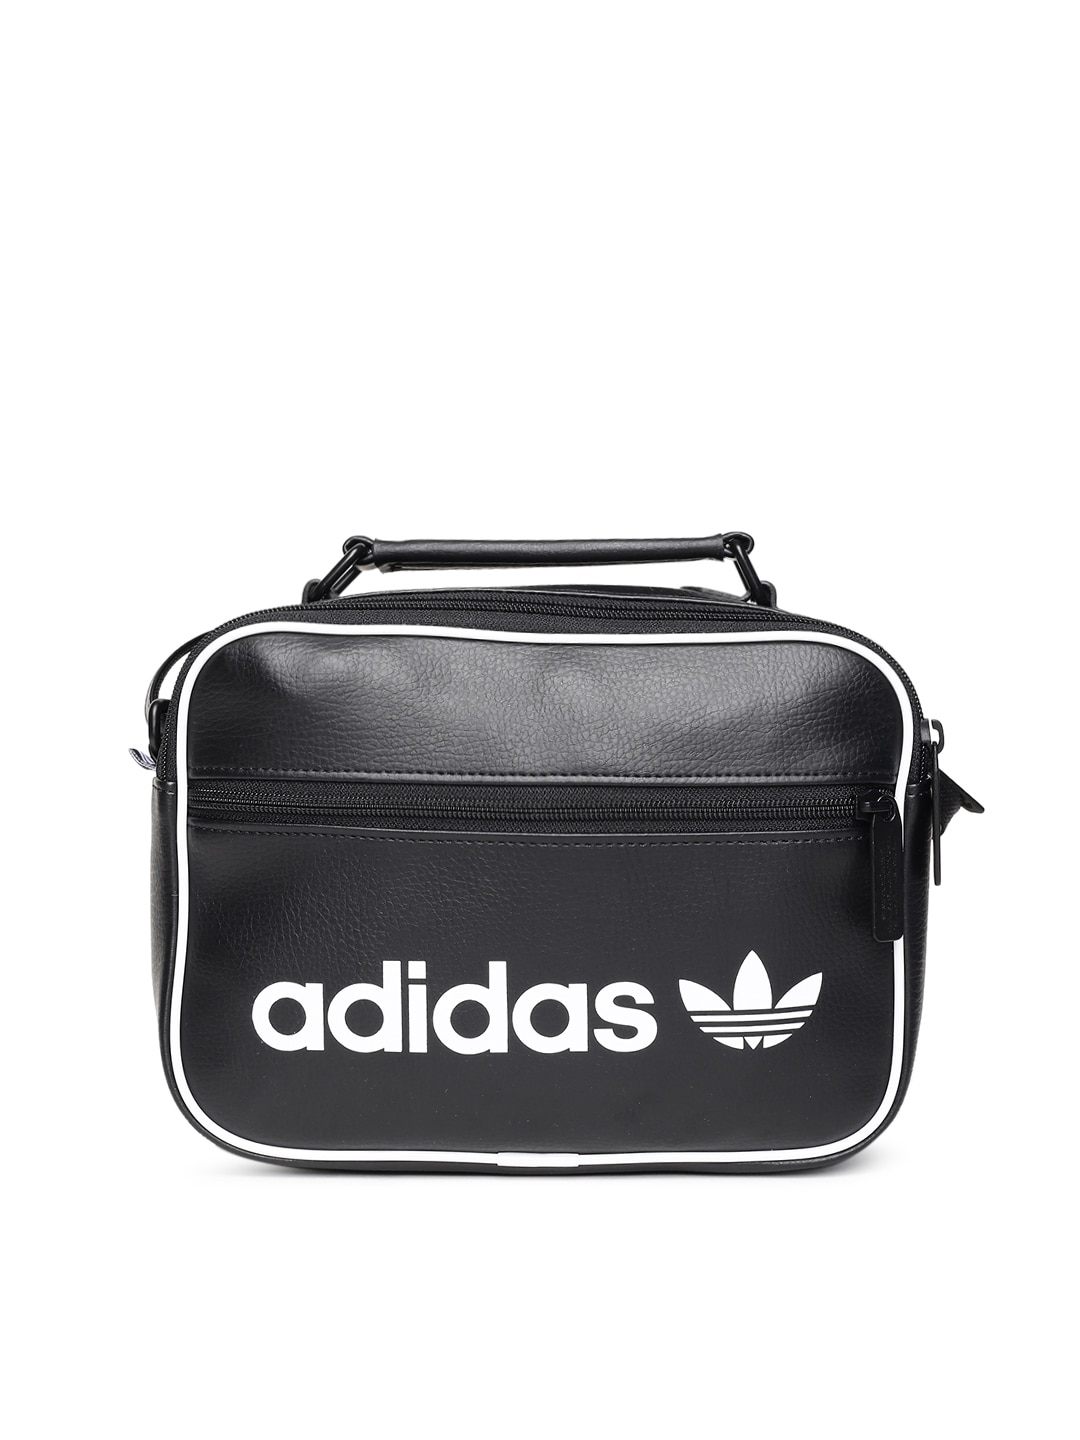 e5c4591672f Adidas Bags - Buy Adidas Bags, Backpacks online in India